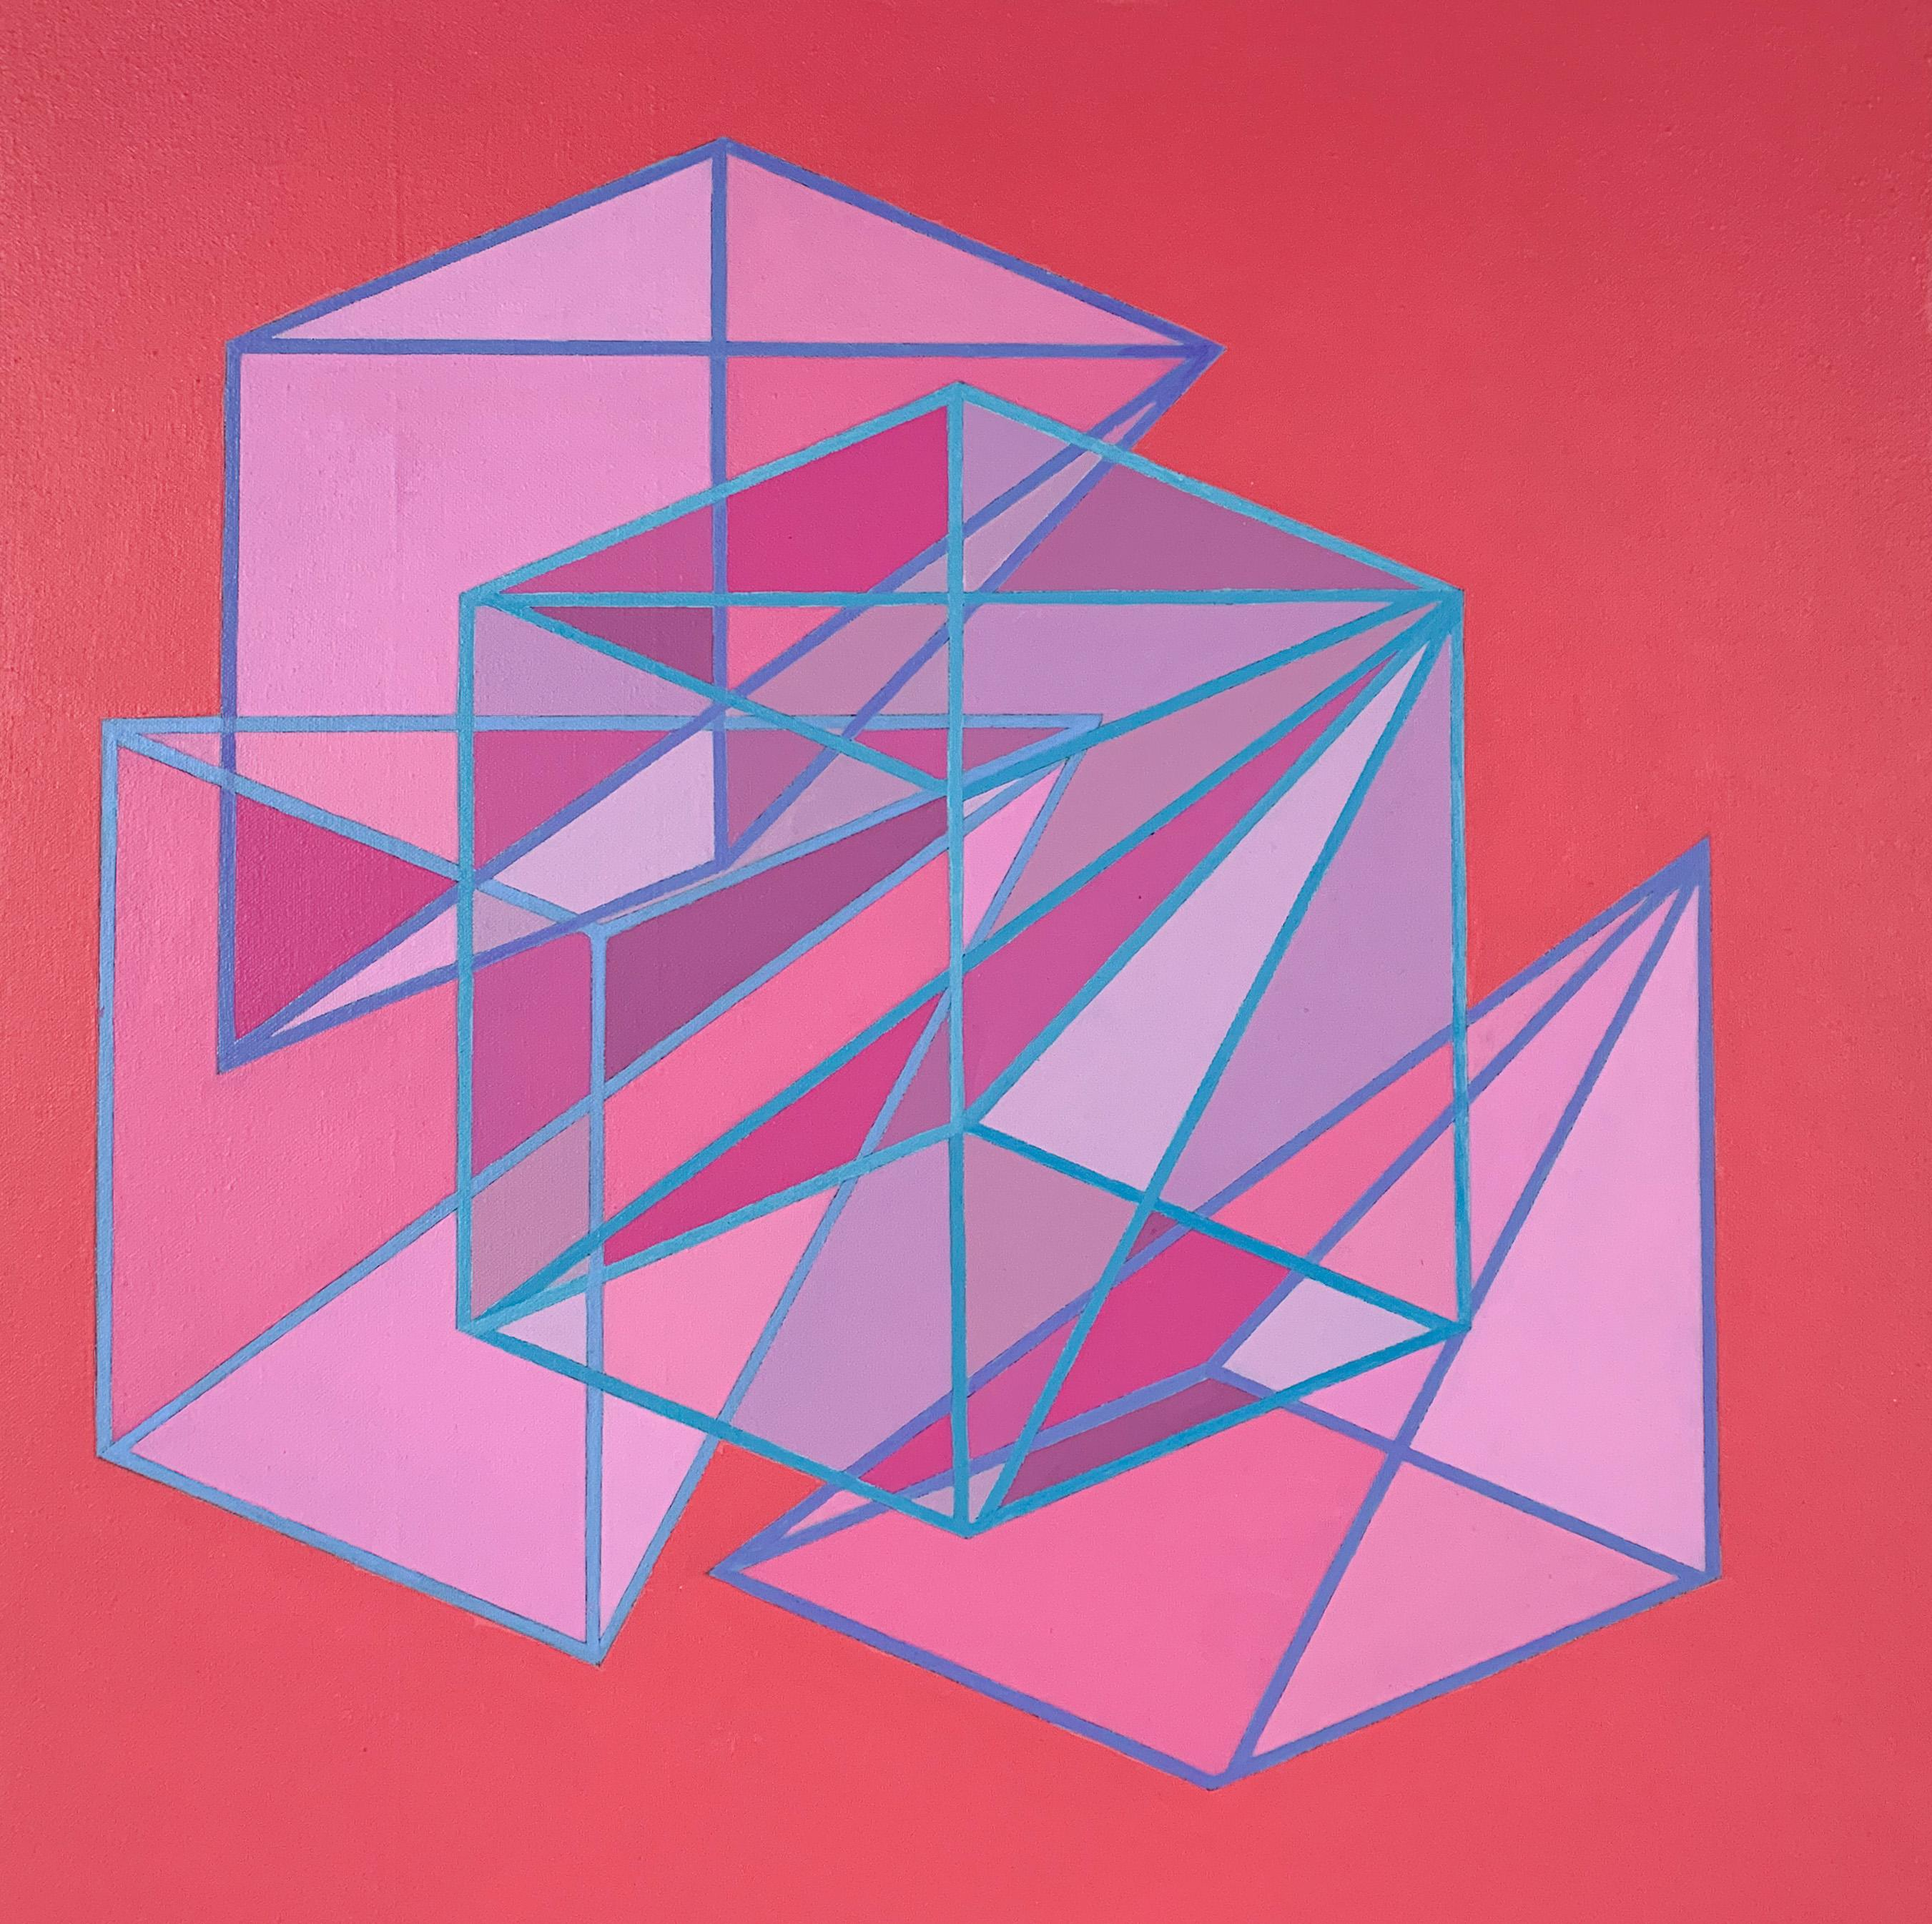 Contemporary geometric abstract painting w/ pink & purple cubes, pyramids on red